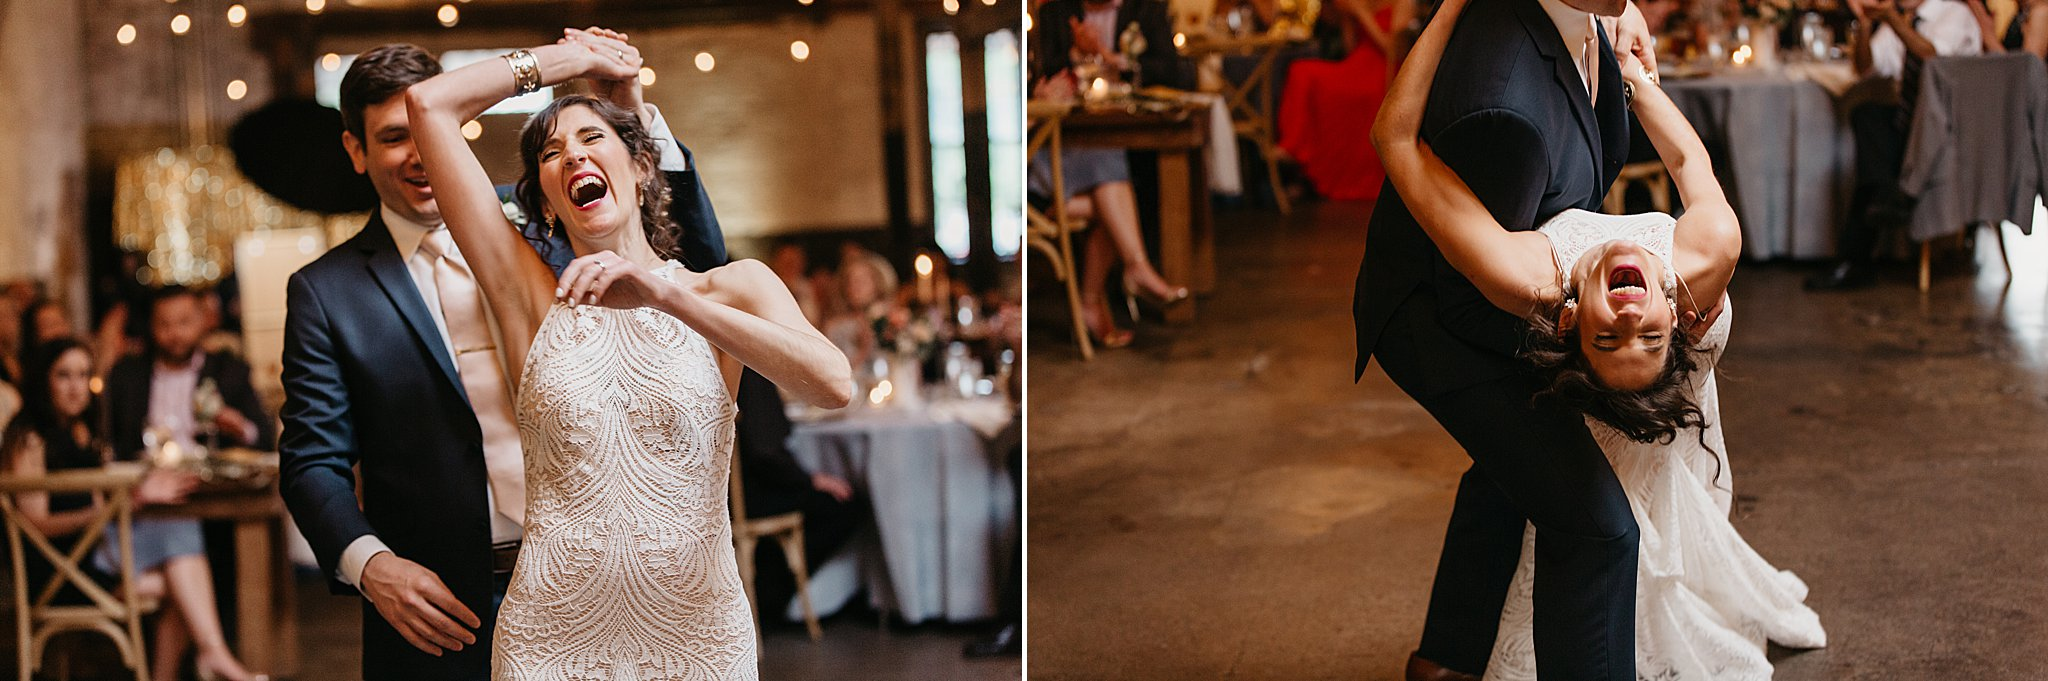 Wilderlove Co_Wedding Photographer_Industrial Wedding_Jewish Wedding_Dallas Texas Wedding_Brake & Clutch Warehouse_North Texas Photographer_0077.jpg